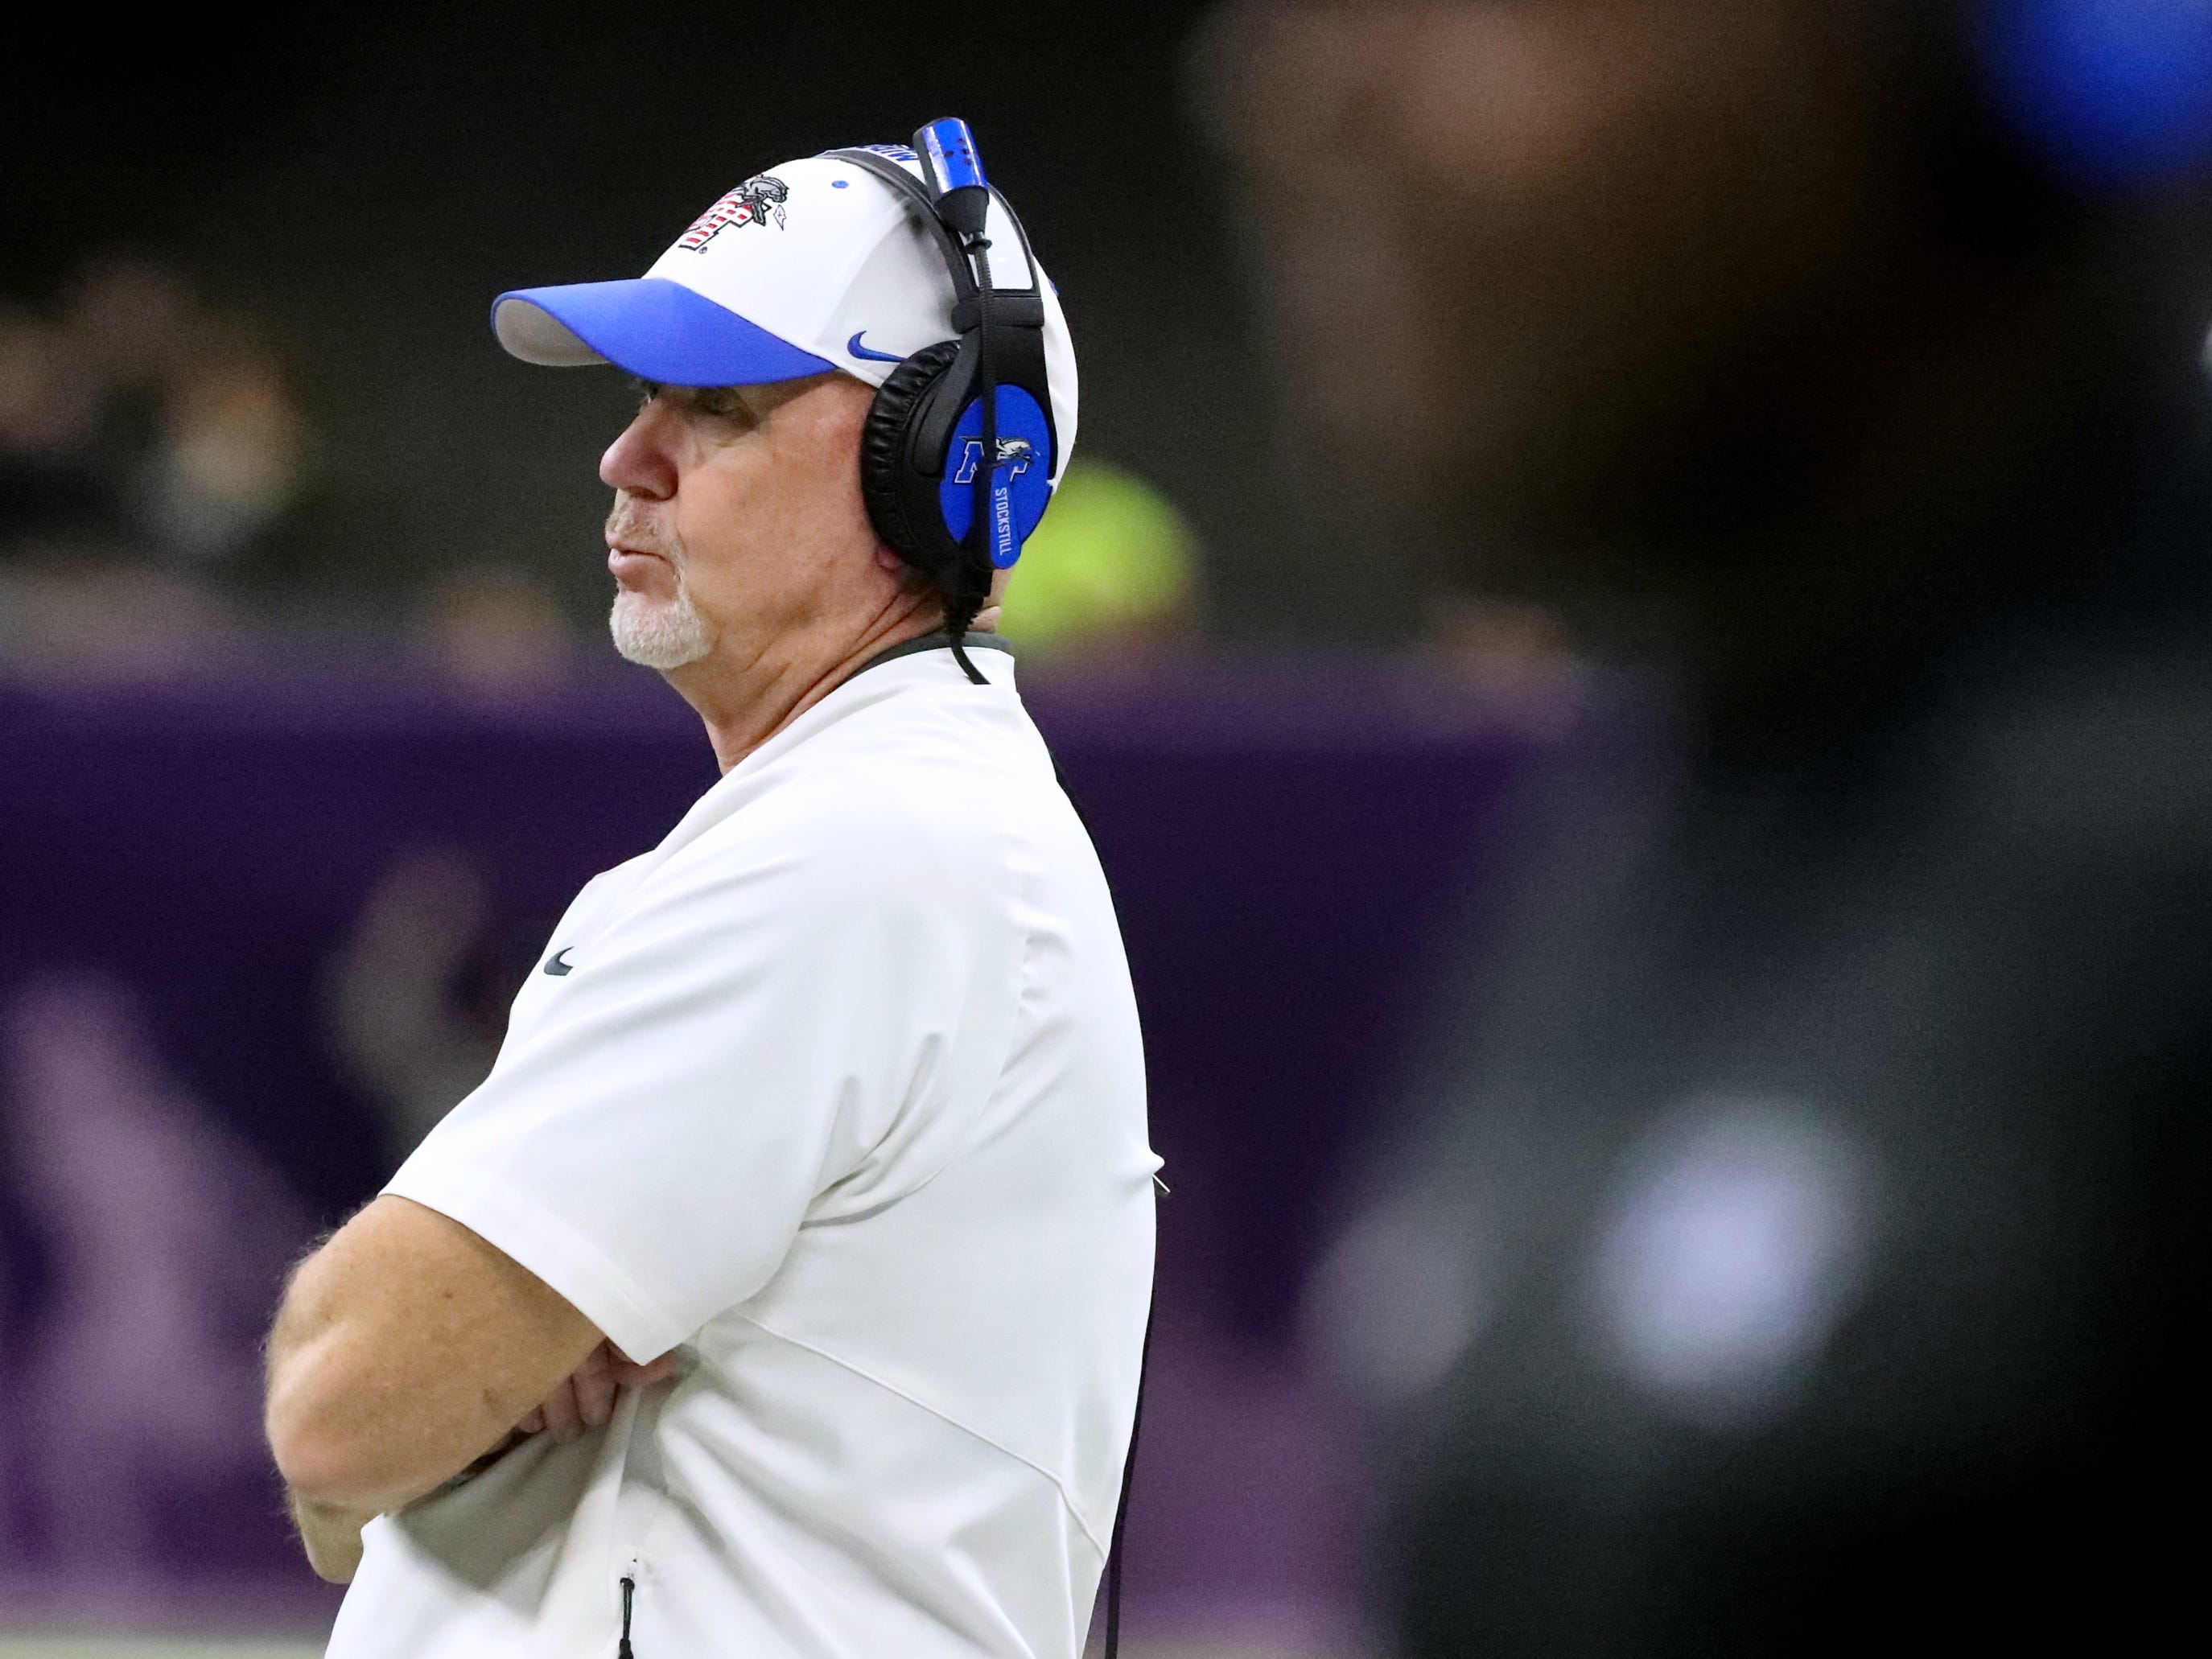 Middle Tennessee Blue Raiders head coach Rick Stockstill watches as Appalachian State makes an extra point during the New Orleans Bowl, on Saturday, Dec. 15, 2018.